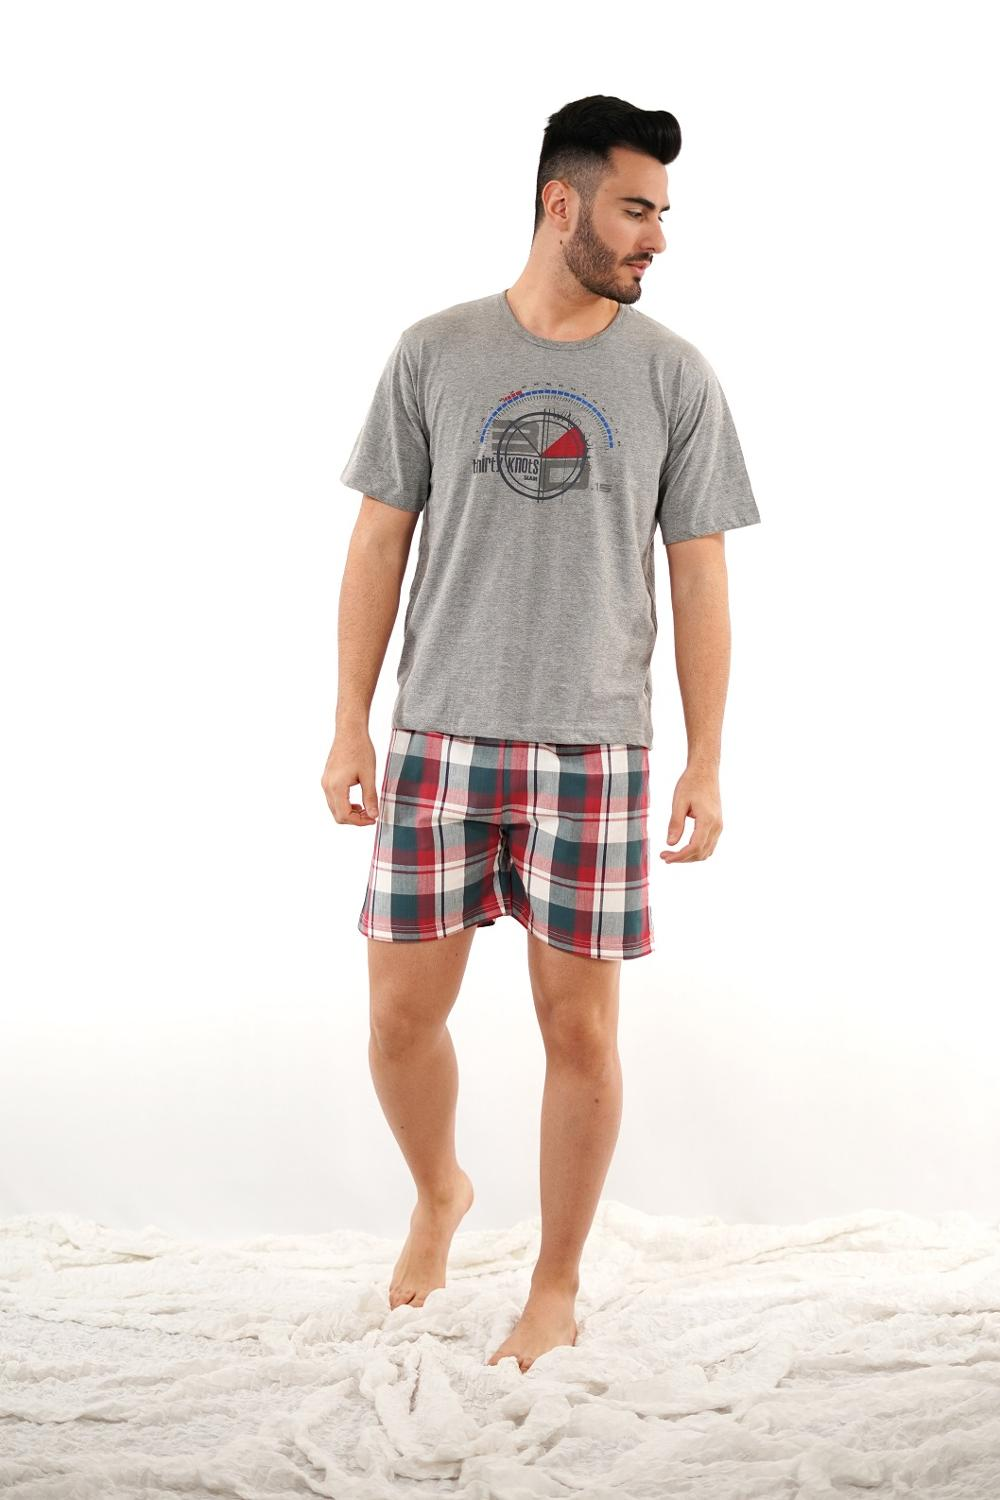 MAN'S Pajamas Summer Cotton Babelo, MAN'S Pajamas Short Sleeve And Short Pant